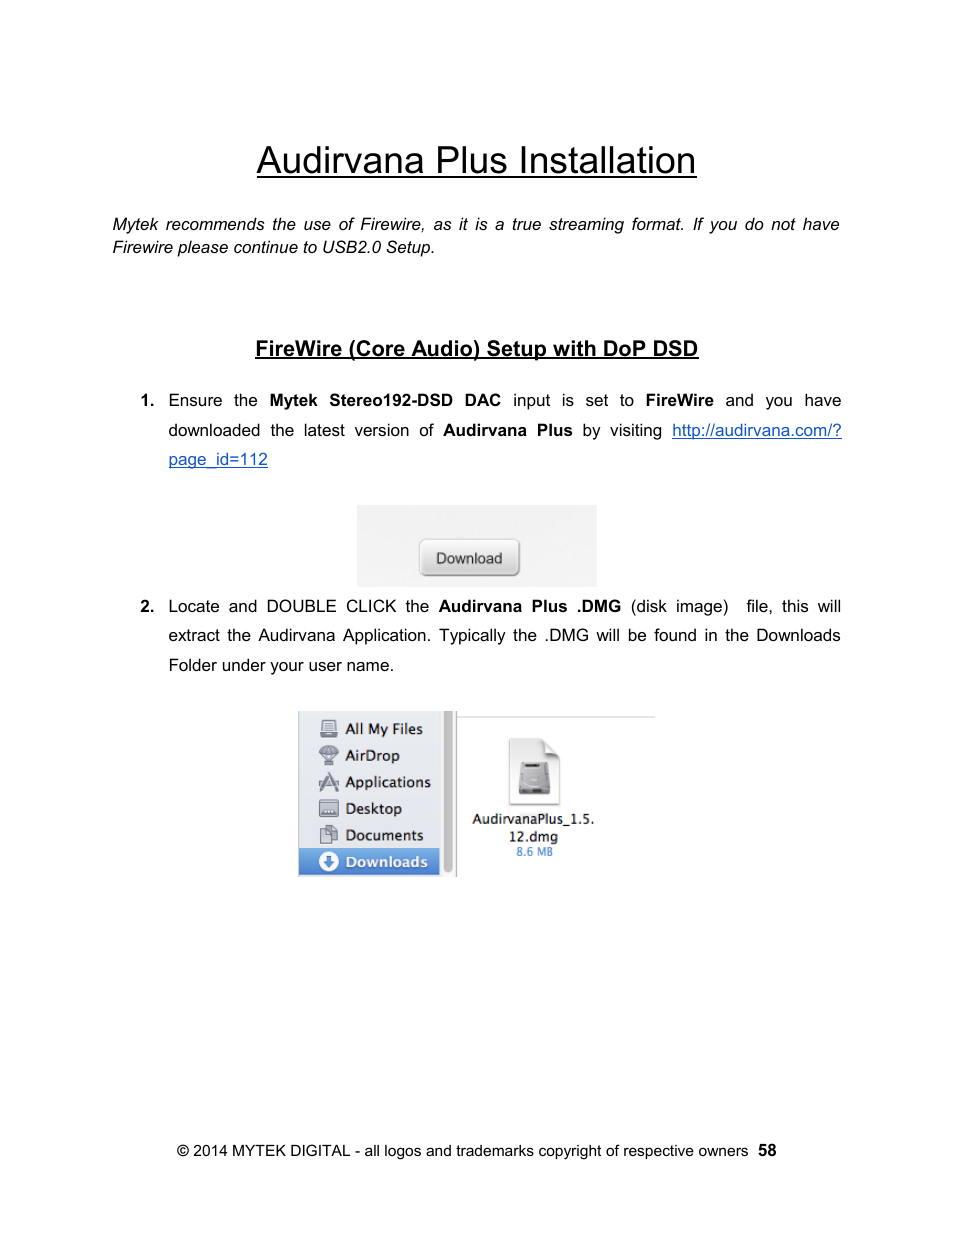 Audirvana plus installation, Firewire (core audio) setup with dop